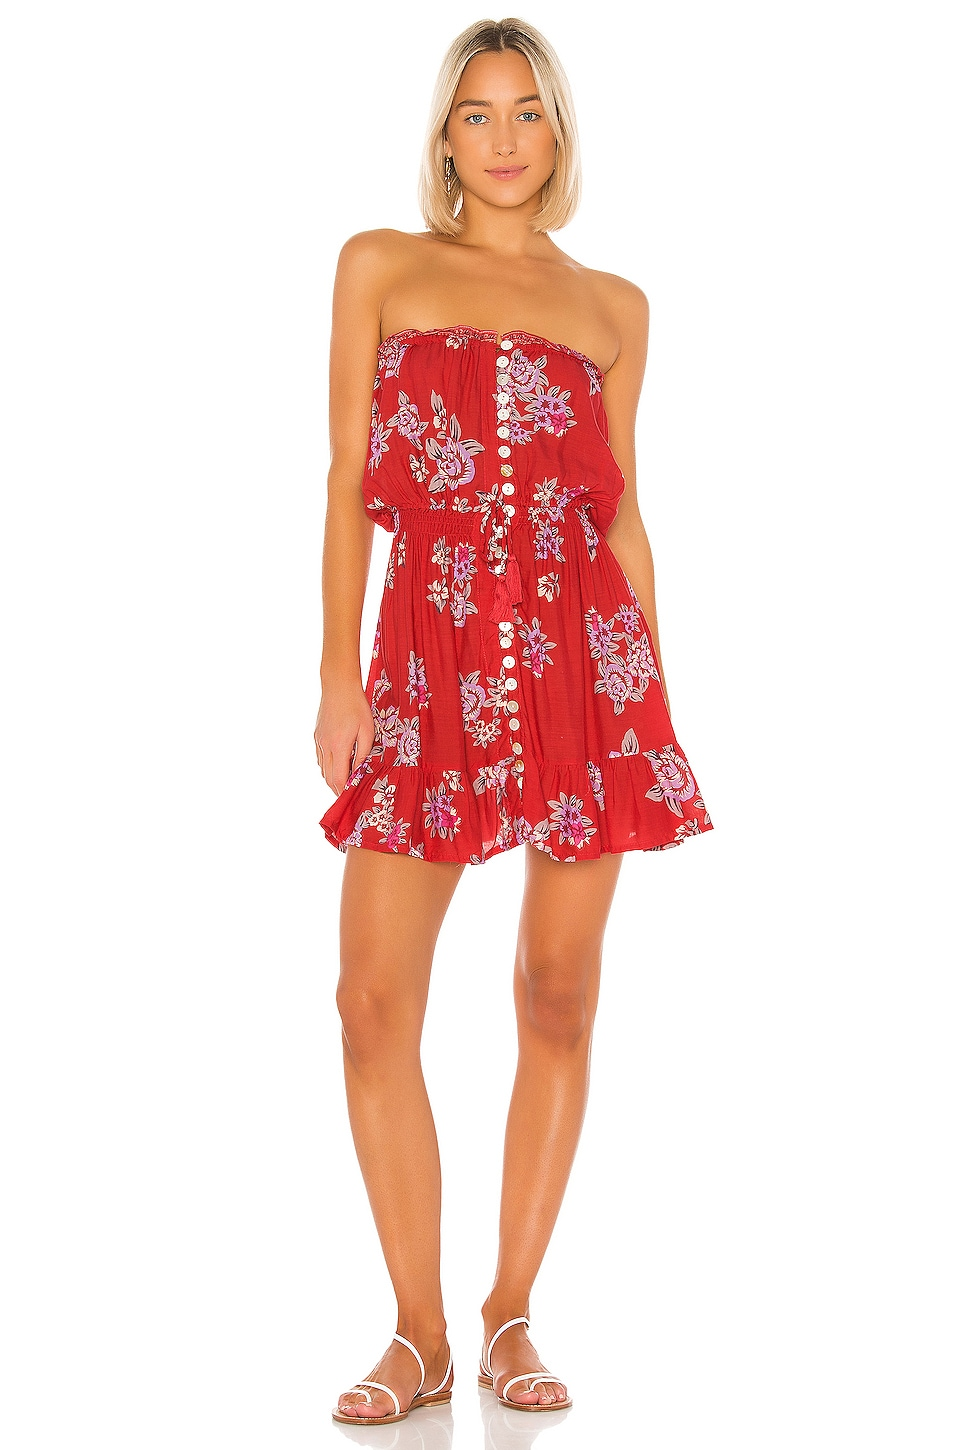 Ryden Mini Dress                     Tiare Hawaii 2